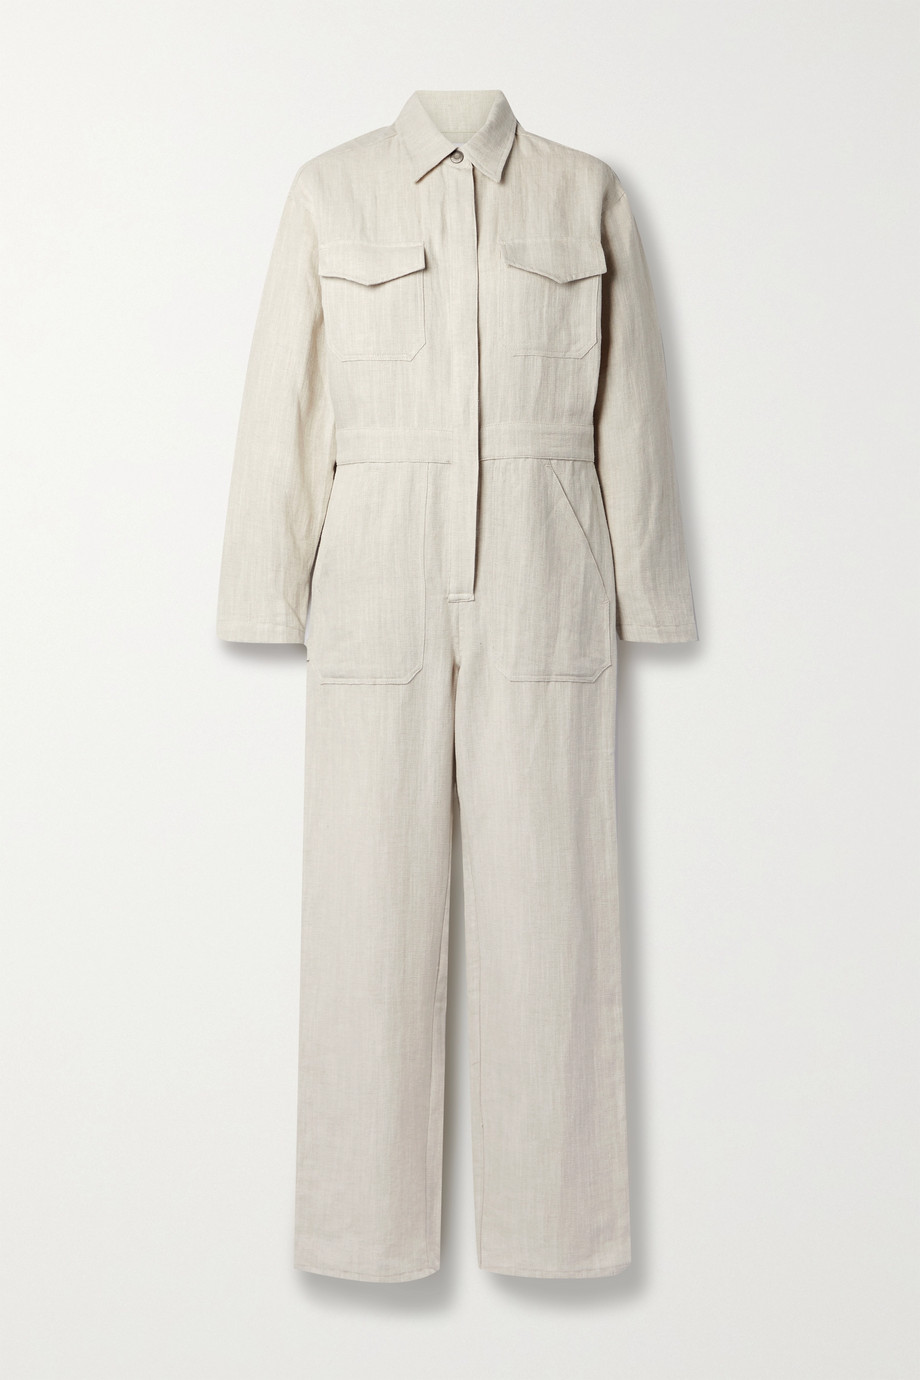 Rivet Utility + NET SUSTAIN Powerhouse herringbone linen and cotton-blend jumpsuit